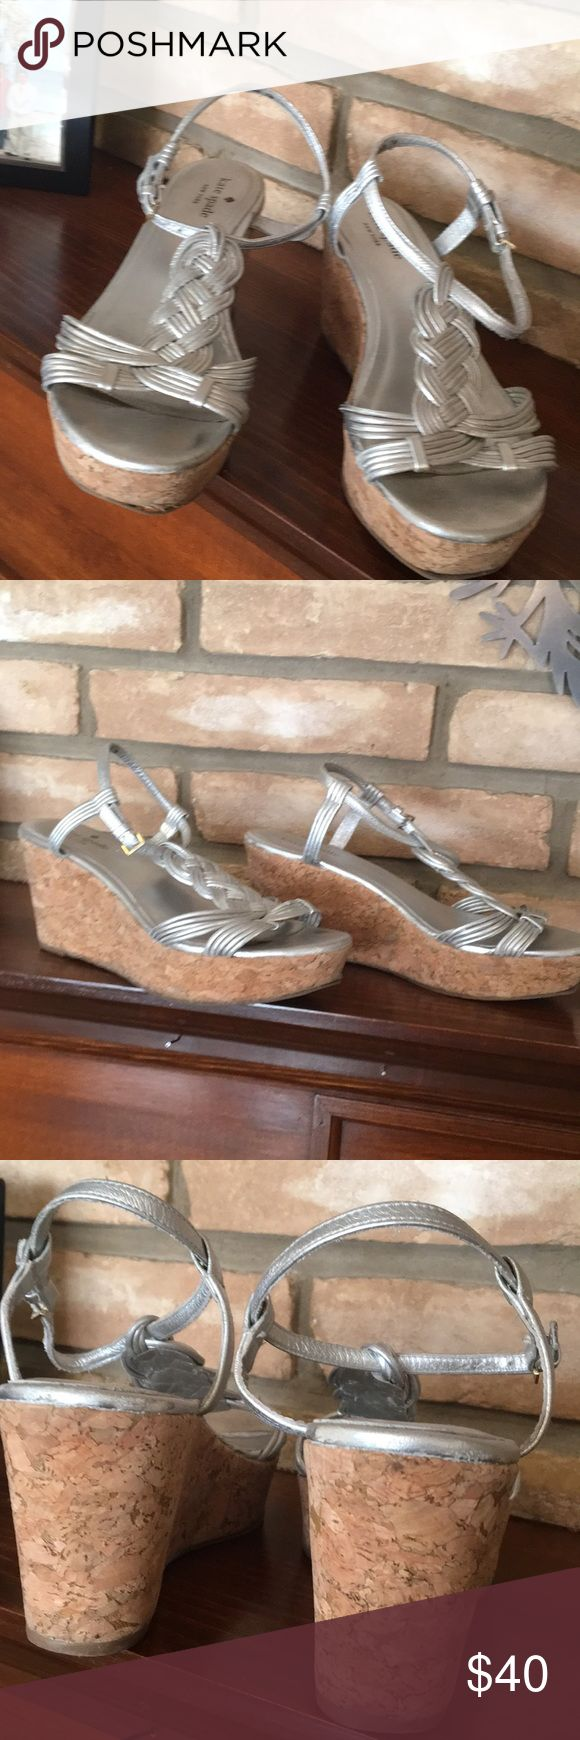 Kate Spade Silver Wedge sandals 7 Great Kate Spade wedges size 7, couple of issues on the sole but lots of wear left kate spade Shoes Sandals